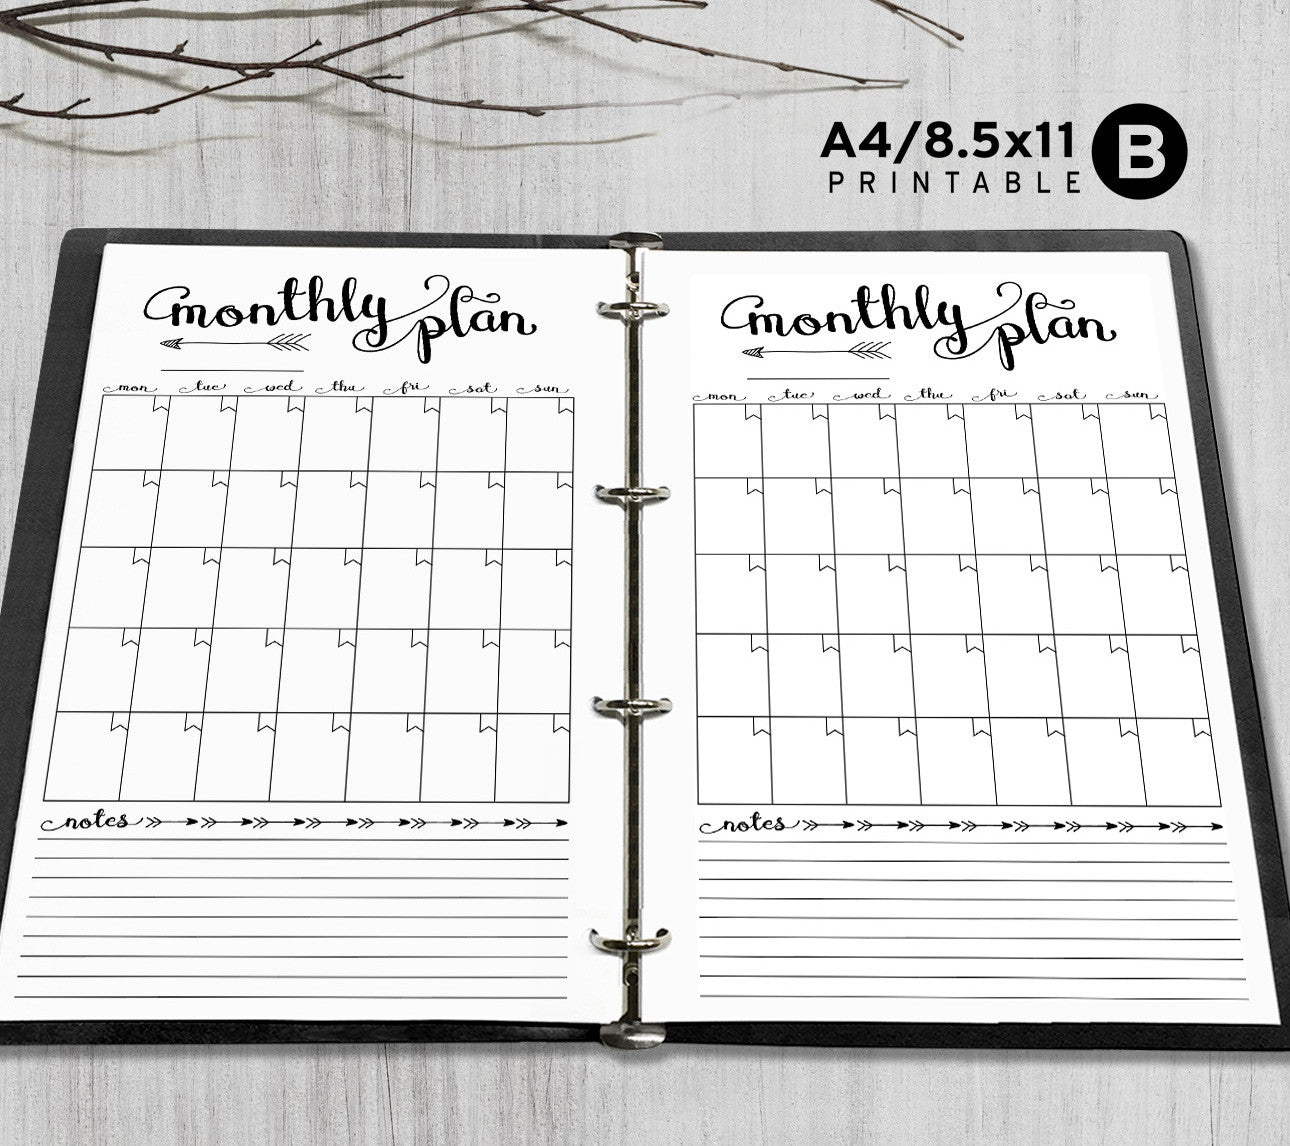 graphic regarding Binder Inserts Printable titled Printable A4, Letter Regular monthly Planner Inserts, A4 / Letter Binder - Arrow